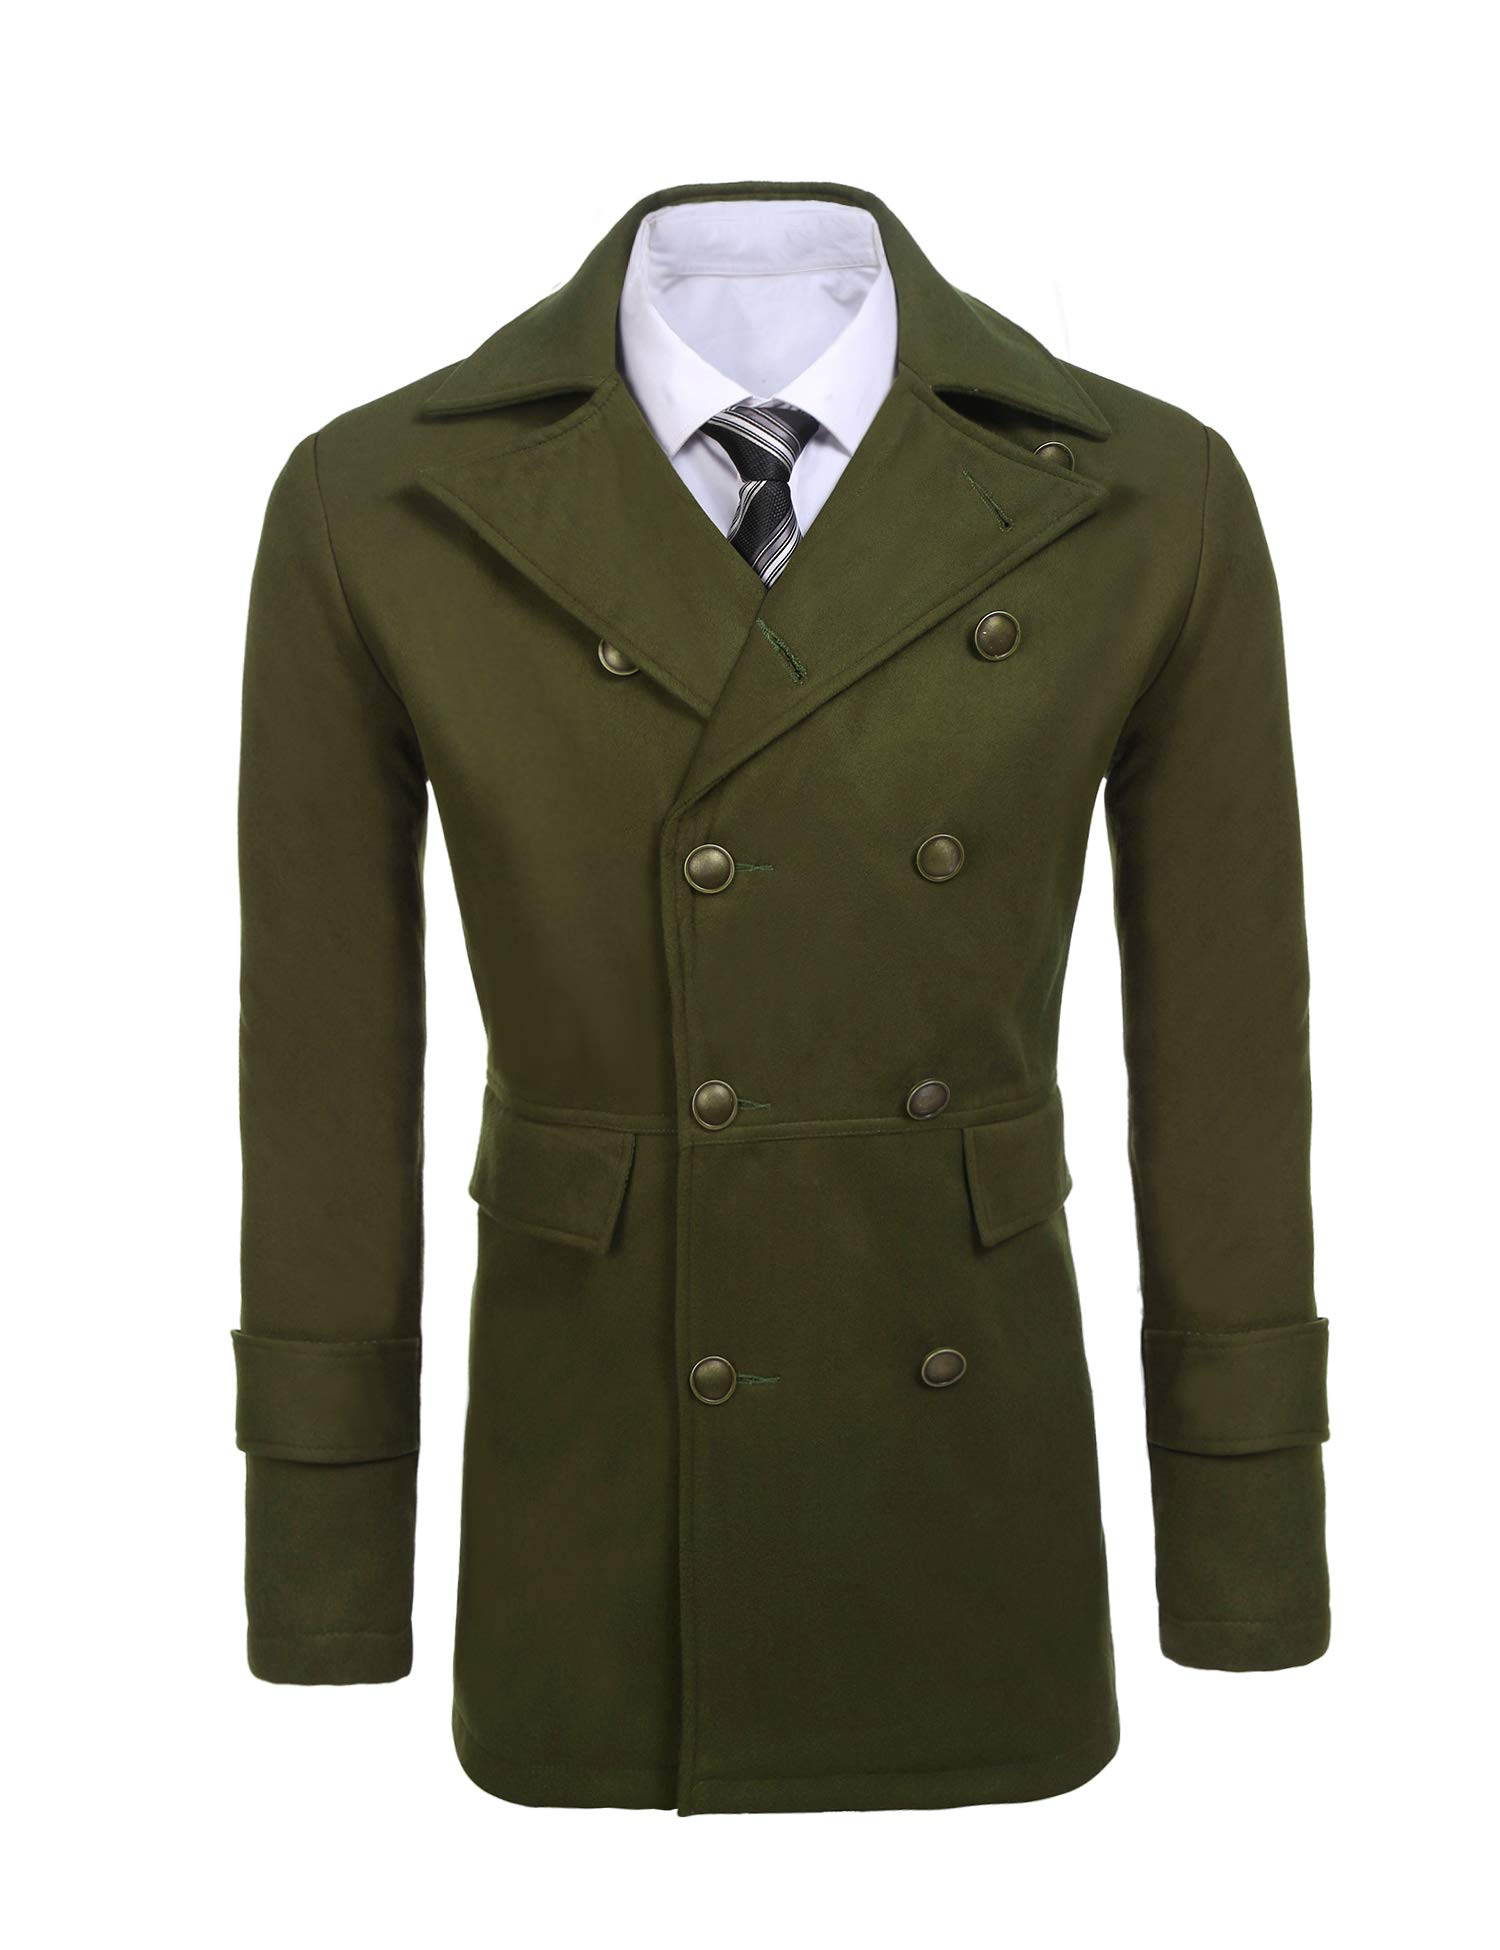 COOFANDY Mens Woolen Overcoat Double Breasted Long Length Notched Collar Trench Pea Coat Army Green by COOFANDY